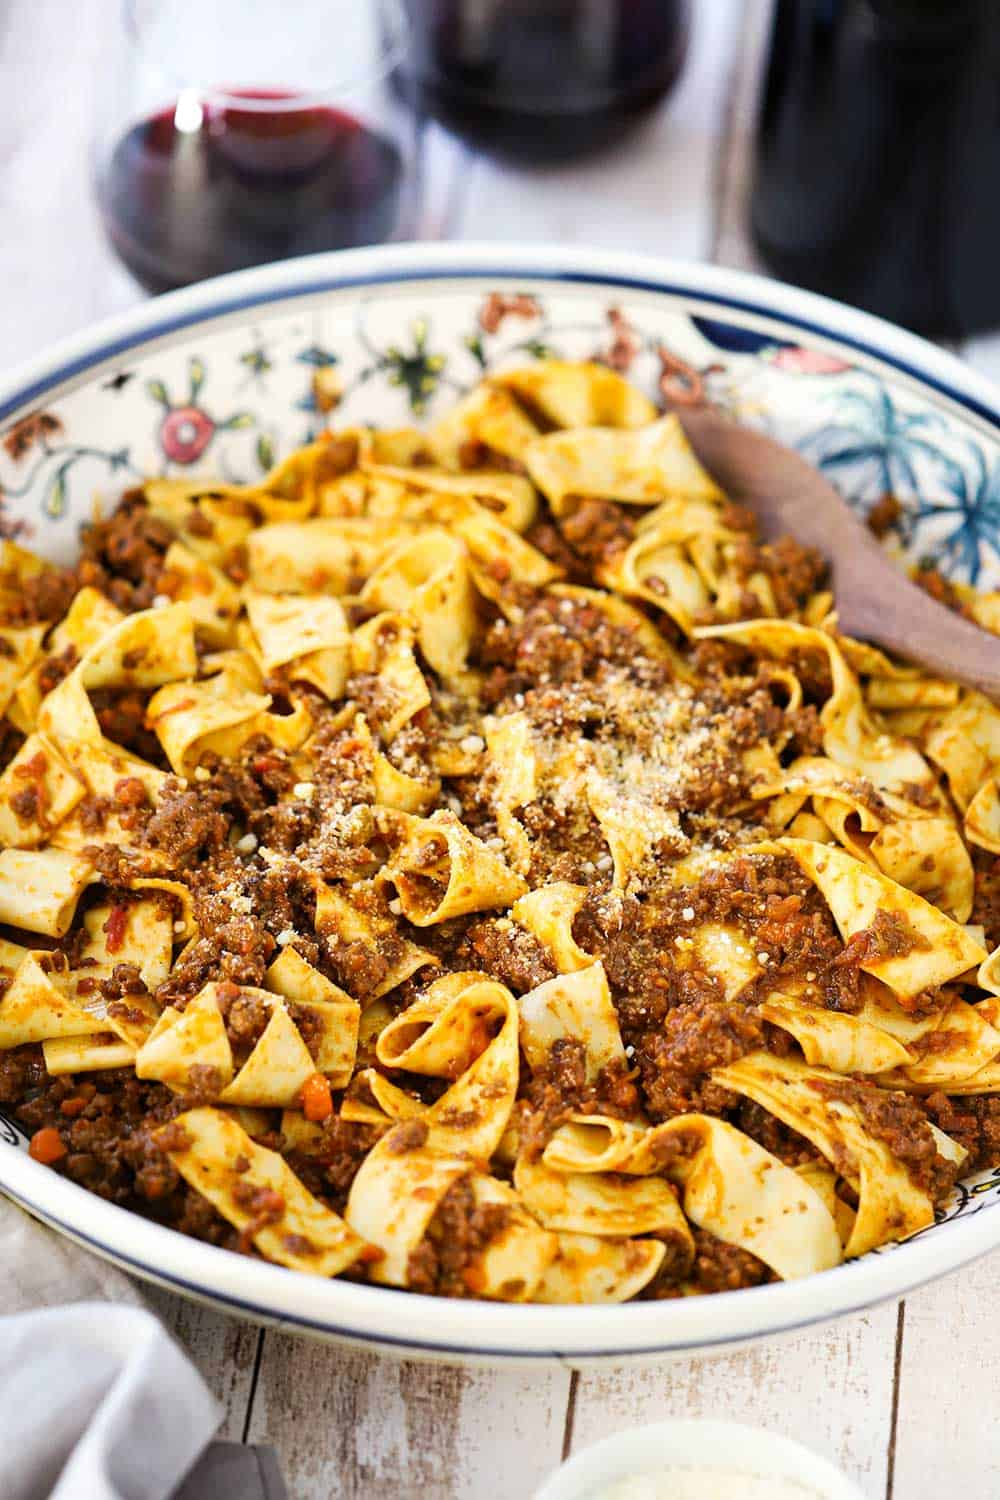 A view looking downward into an Italian pasta bowl filled with pappardelle bolognese pasta next to a couple stemless wine glasses filled with red wine.